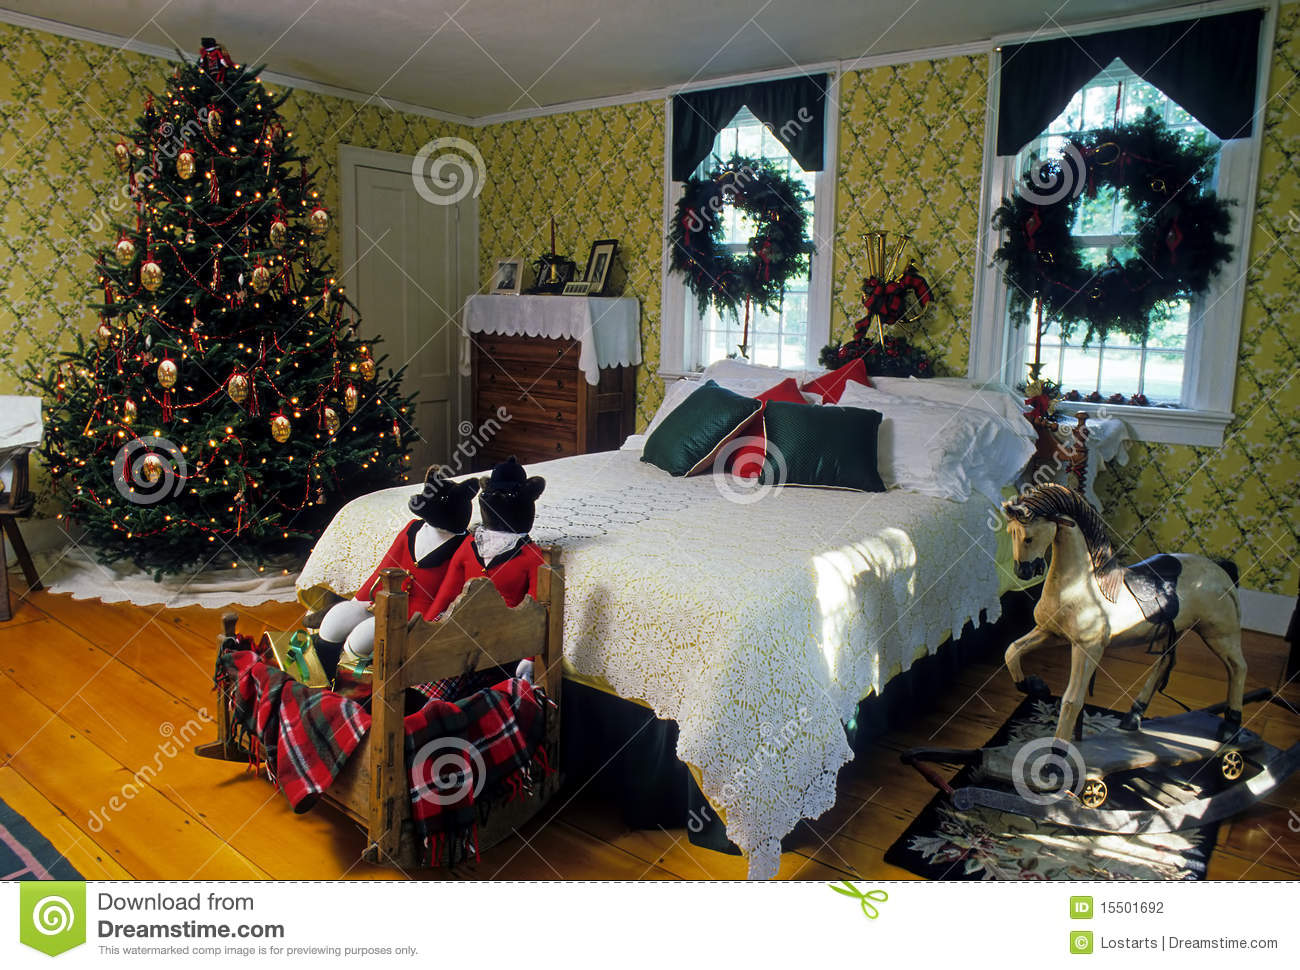 Il natale ha decorato la camera da letto fotografia stock for Camera da letto decorazioni